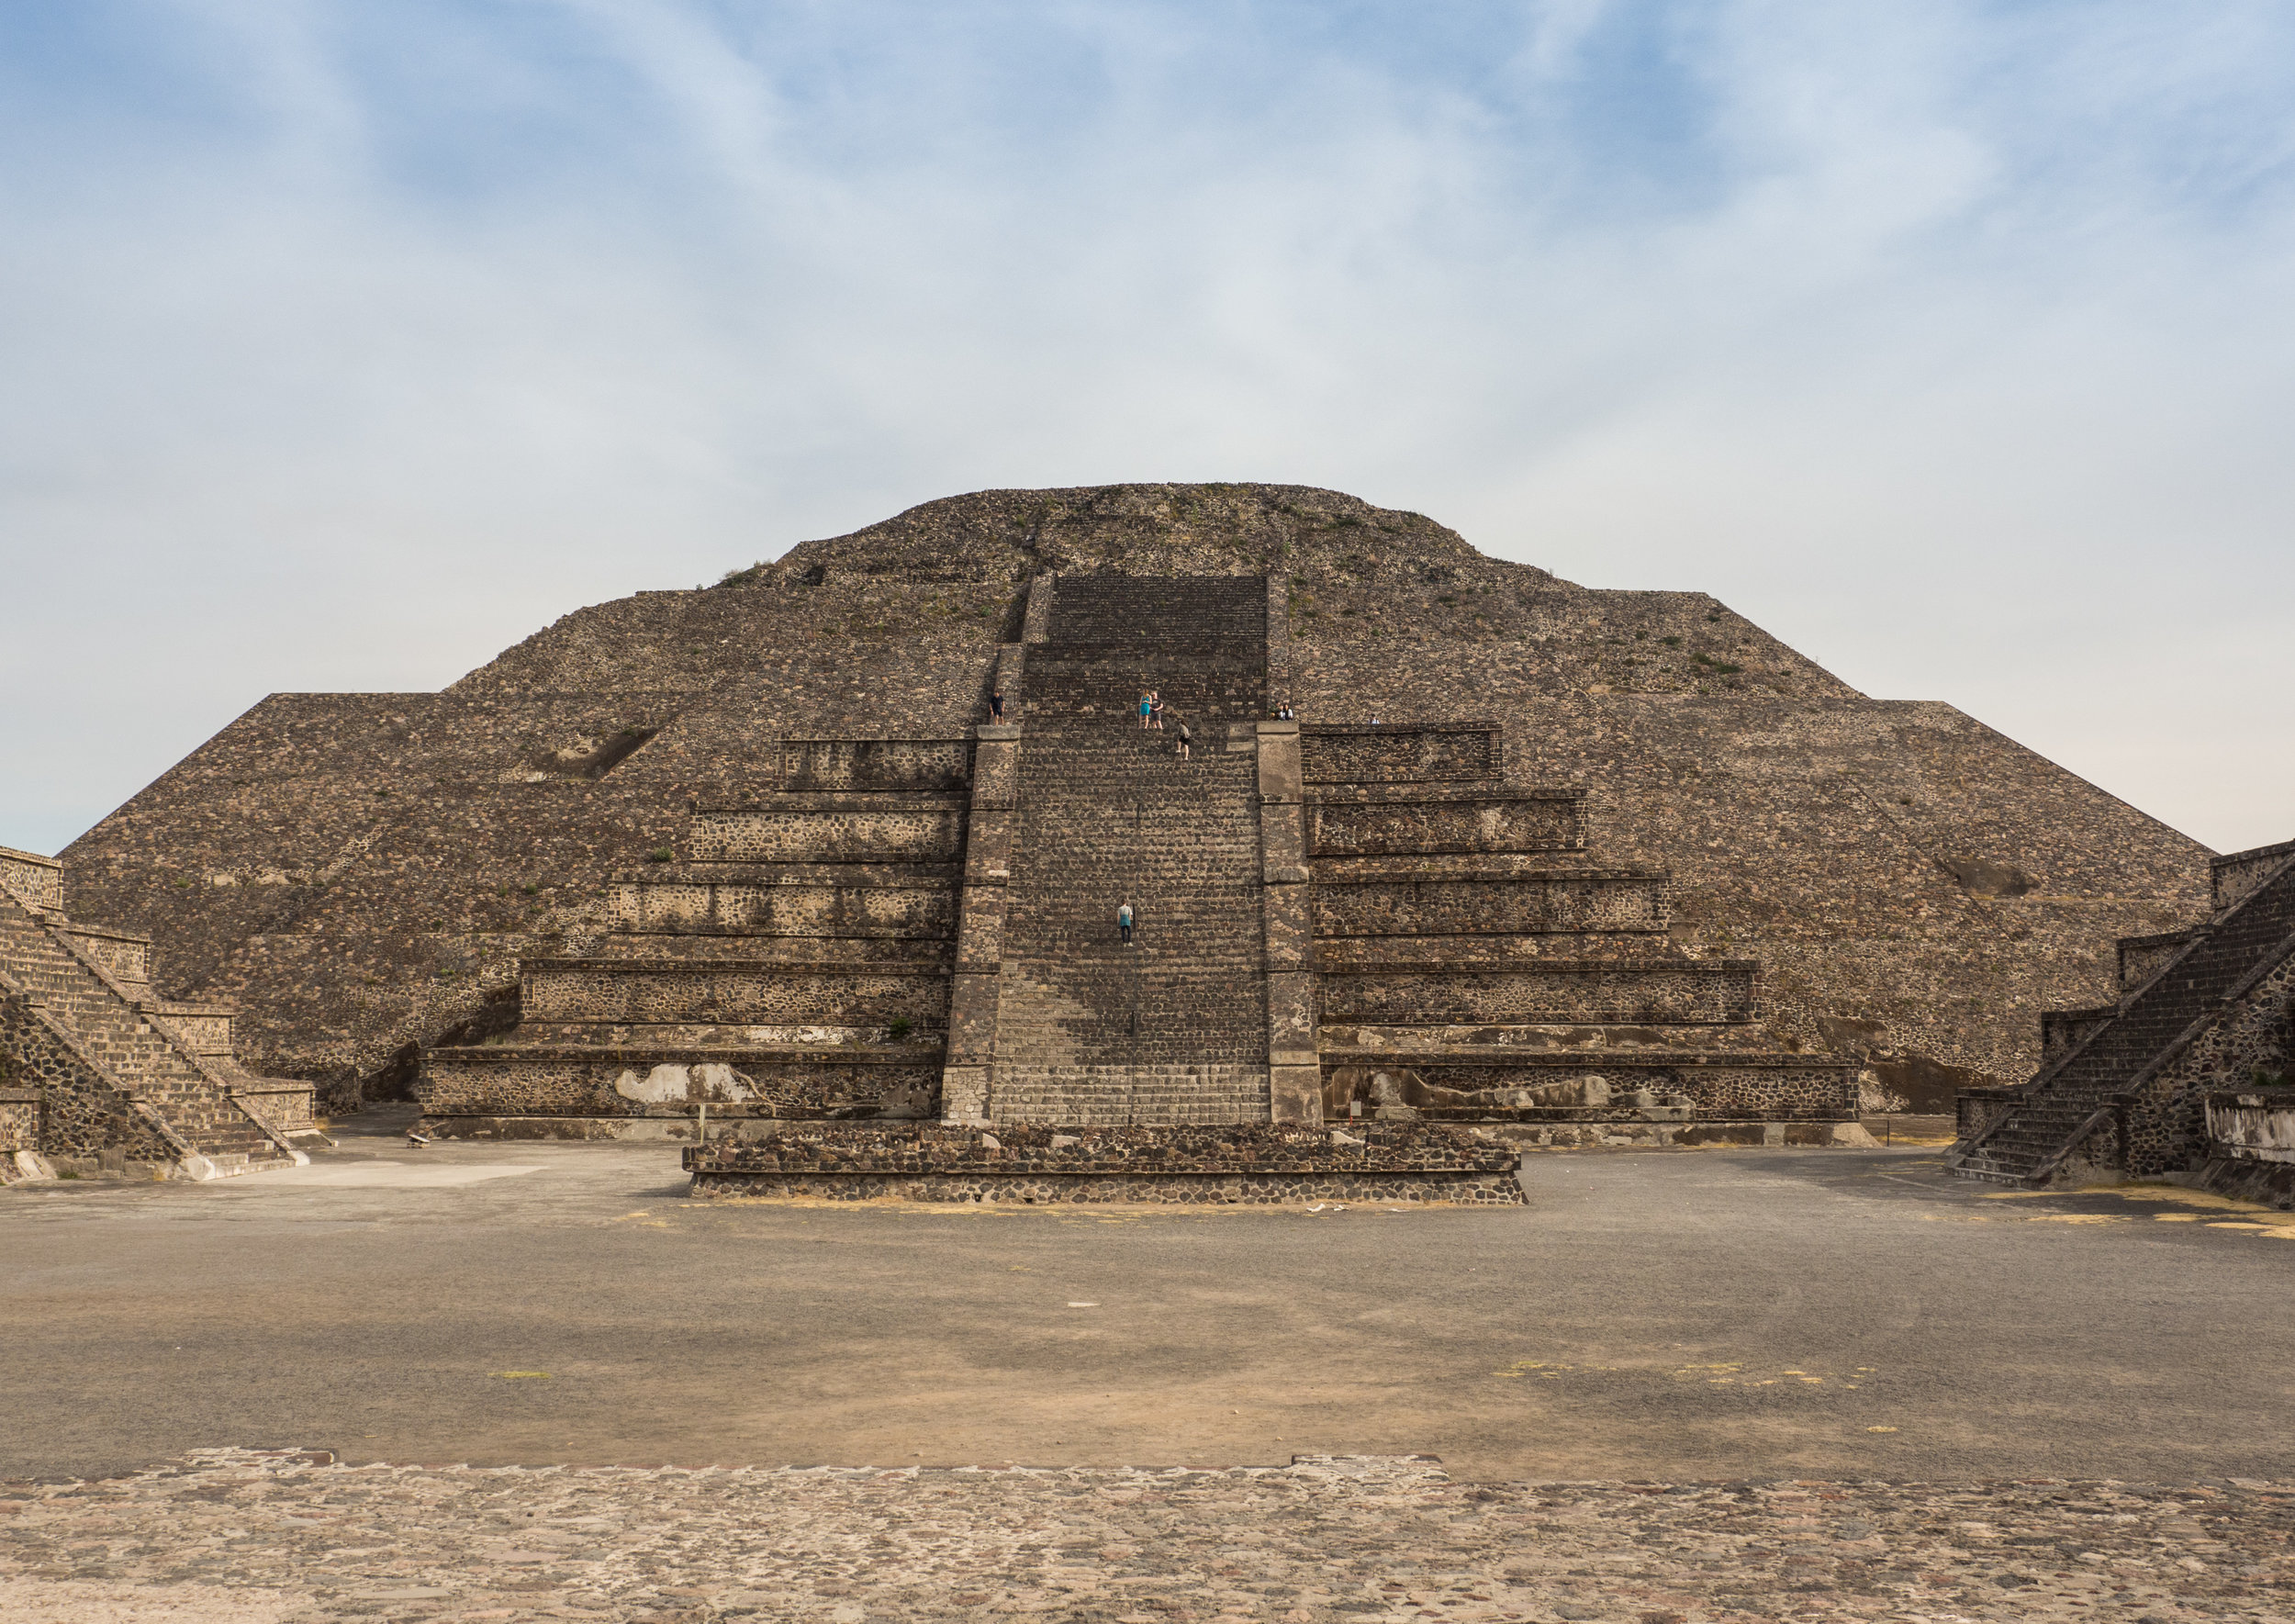 Pyramid of the Moon, Teotihuacan, Mexico photo by PaShia Lee